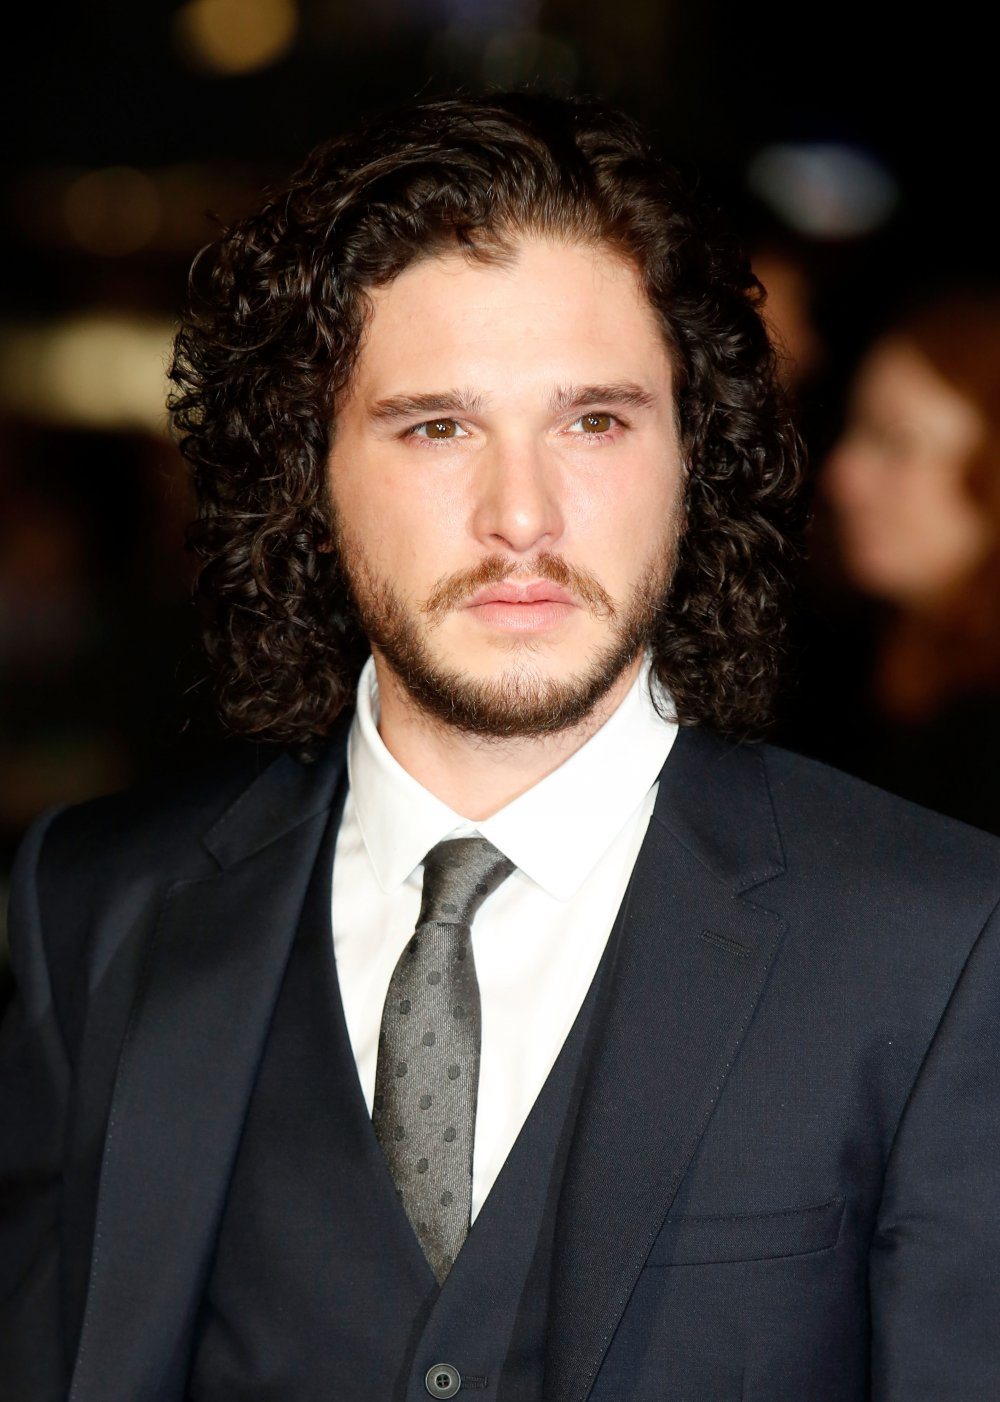 Kit Harington on the red carpet for Testament of Youth during the 58th BFI London Film Festival